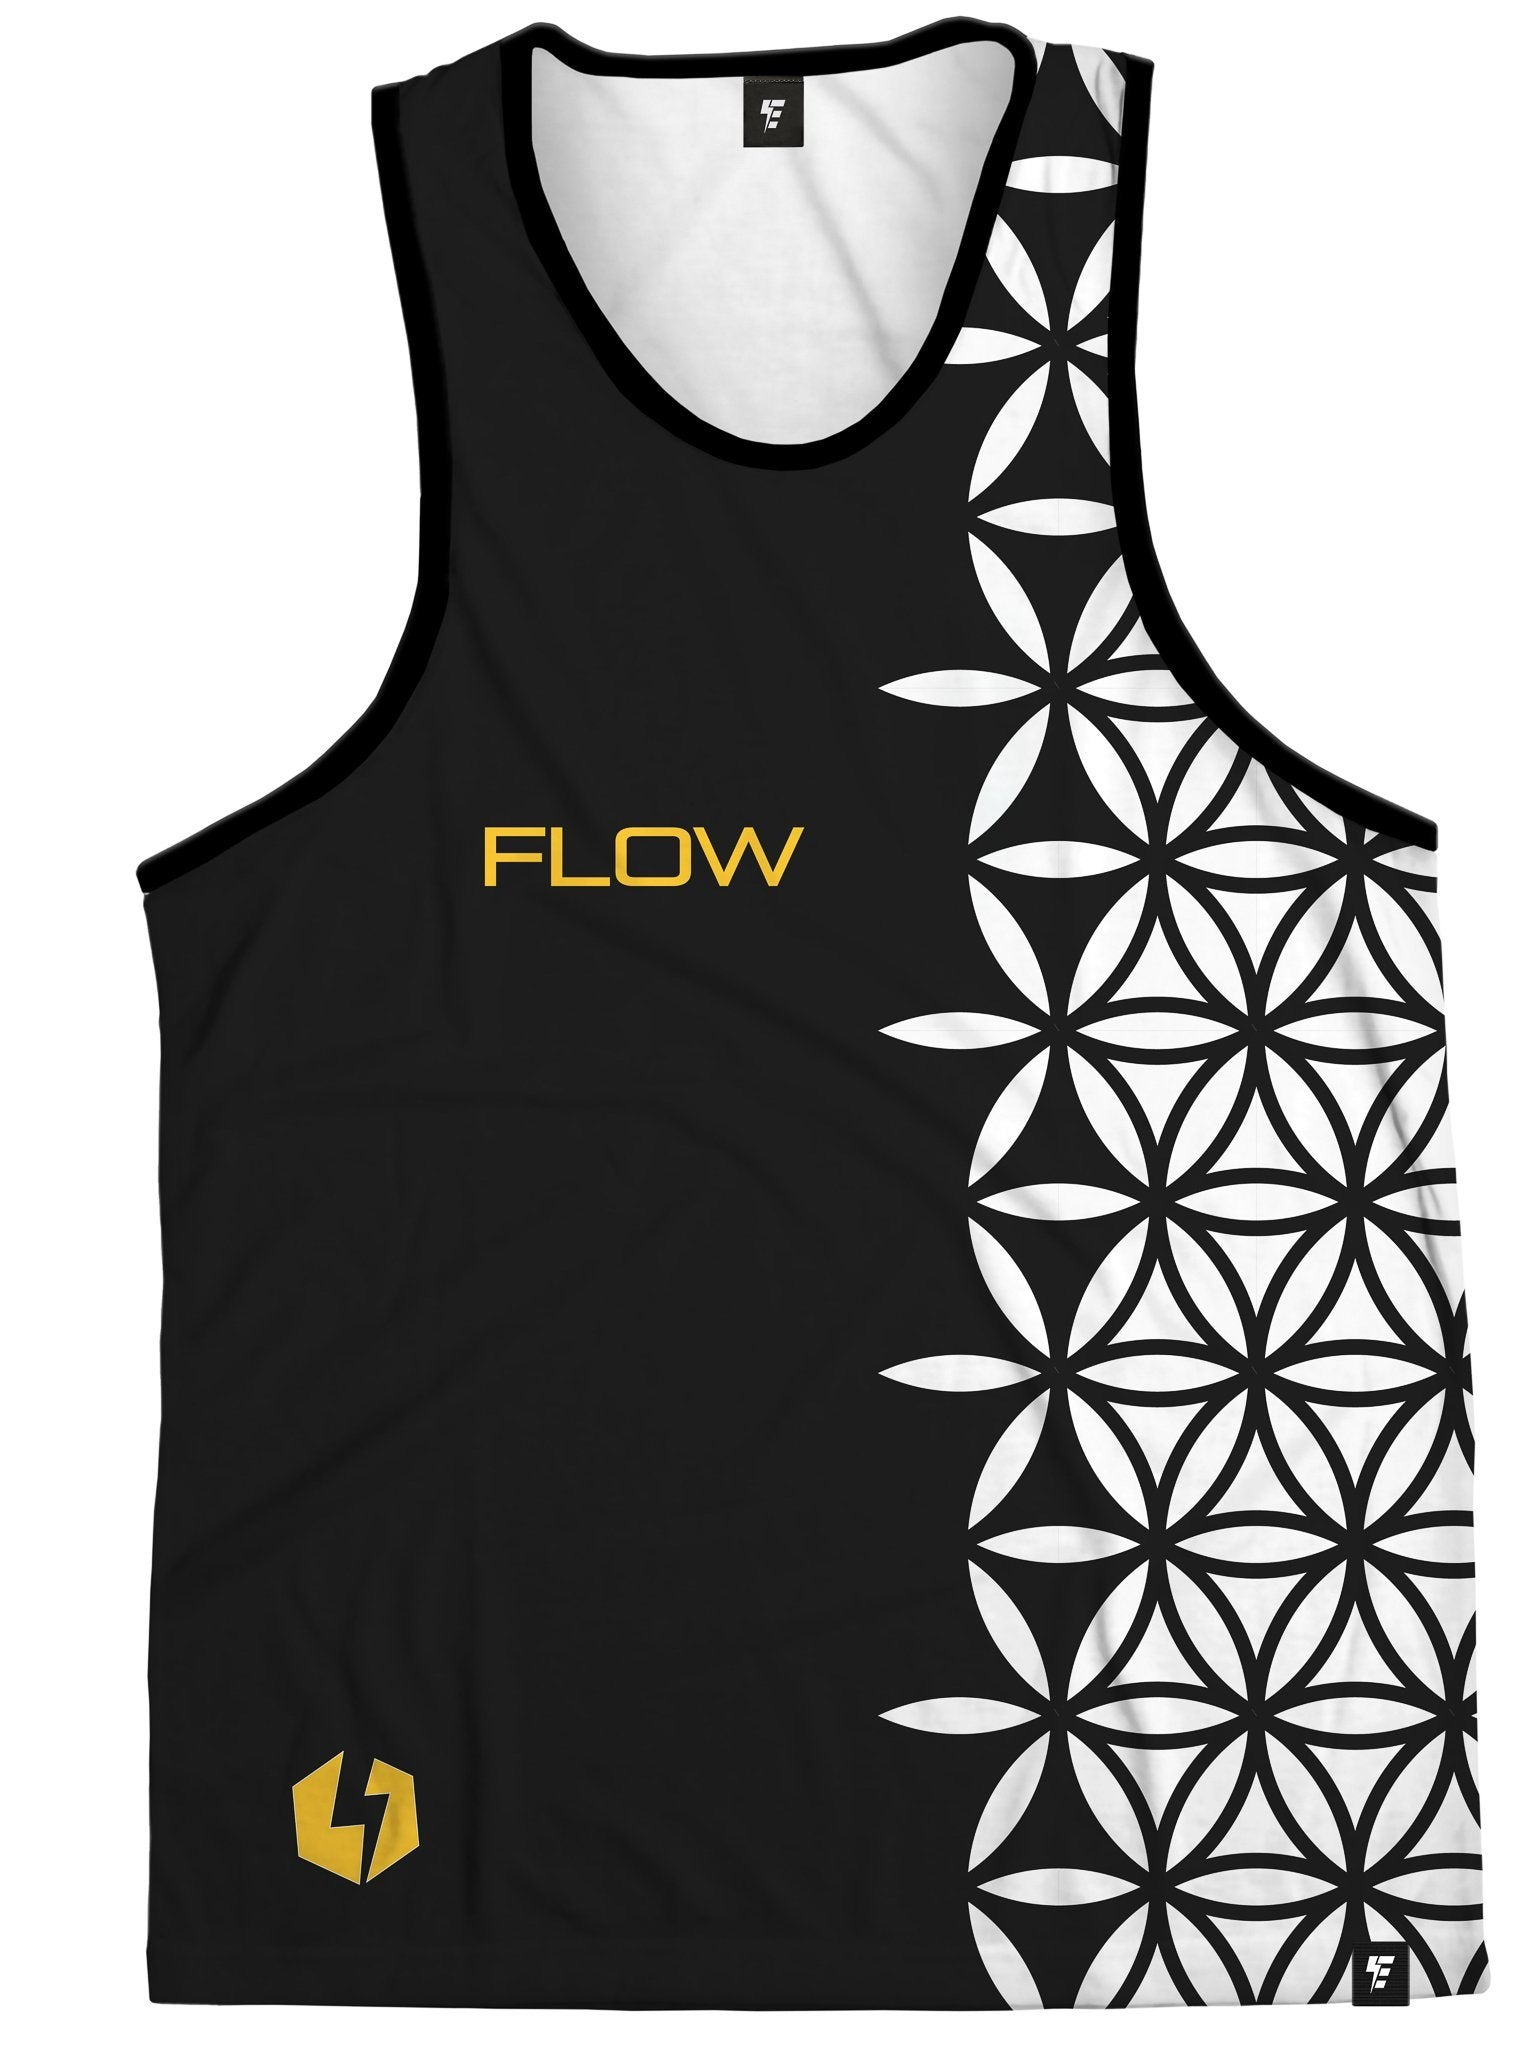 Neon Sub-Conscious Flow (Orange) Tank Top Tank Tops Electro Threads